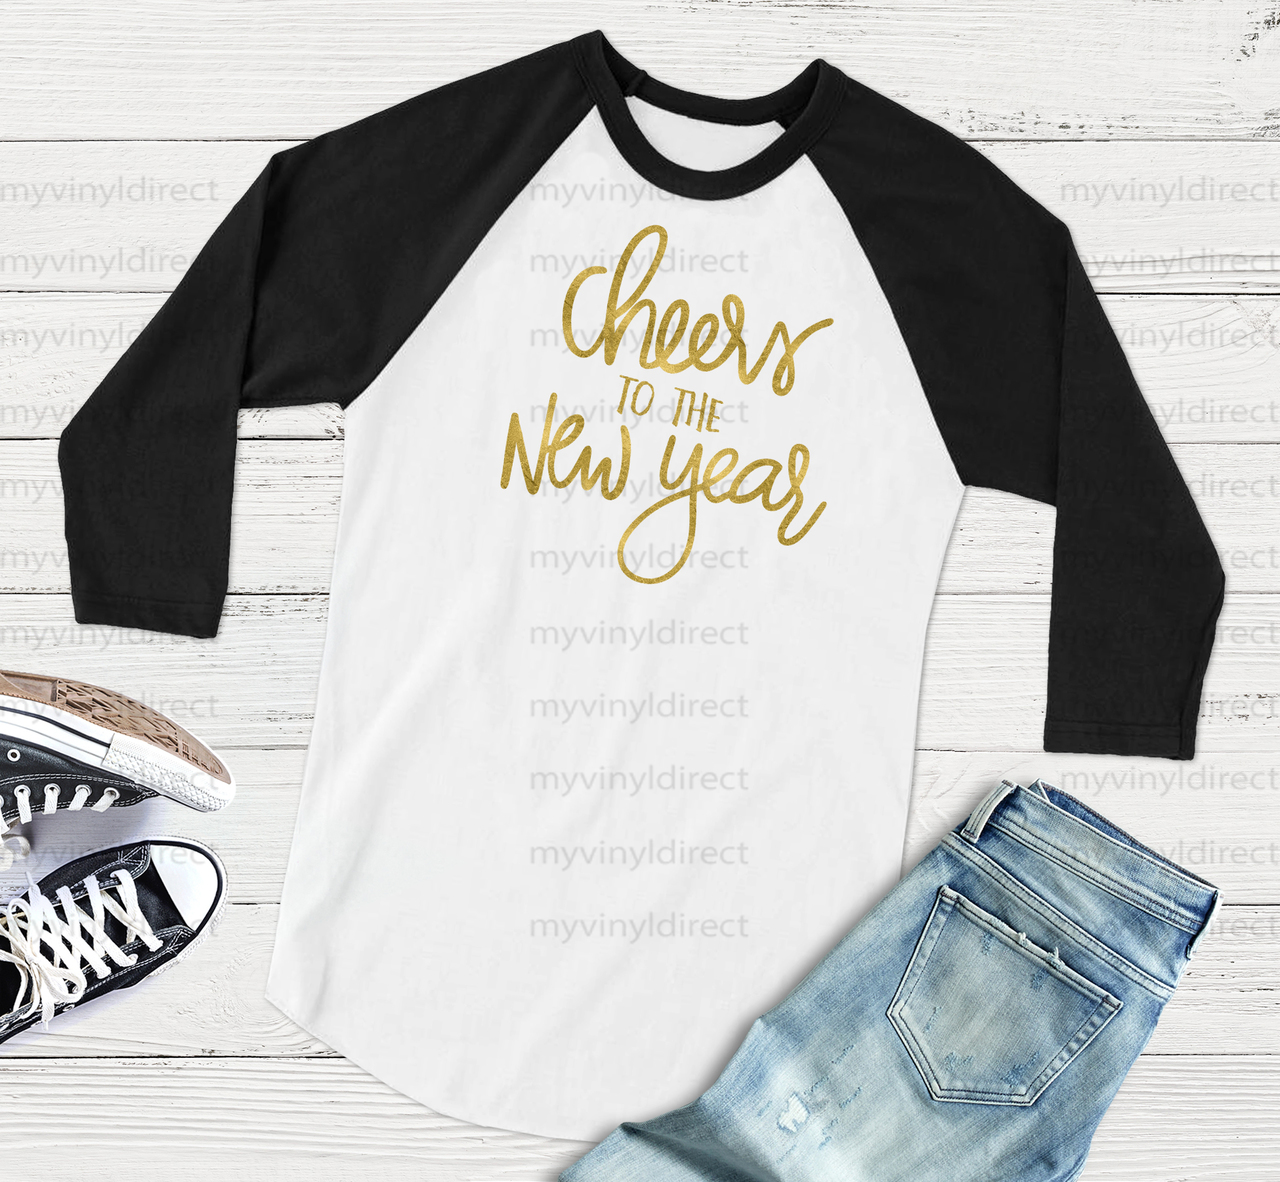 Cheers To The New Year HEAT PRESS TRANSFER - My Vinyl Direct